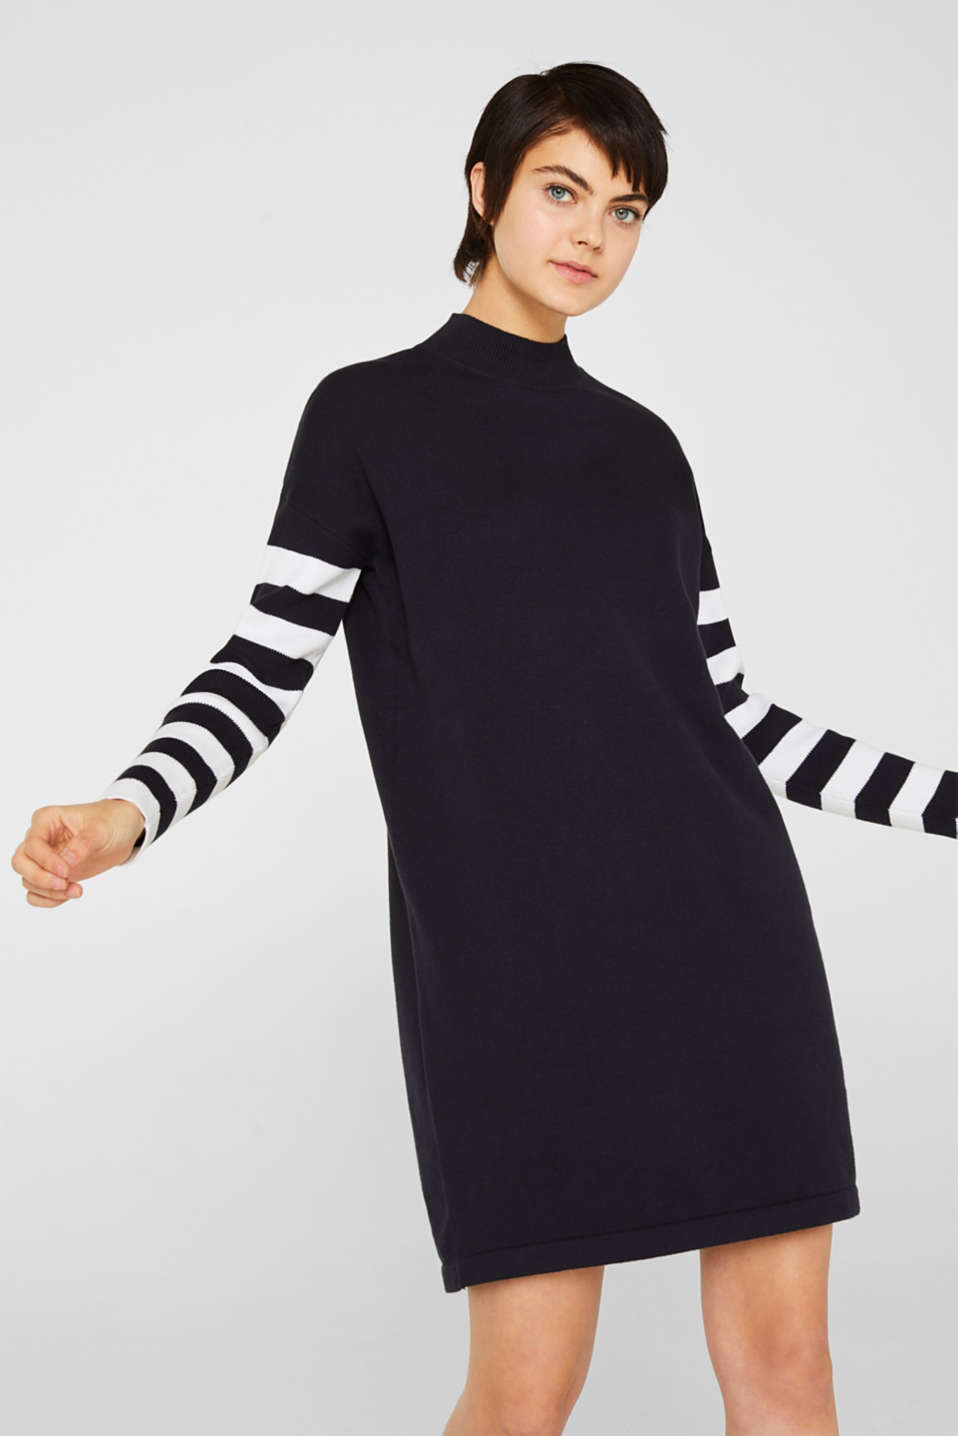 Knit dress with stripes, 100% cotton, NAVY 2, detail image number 0